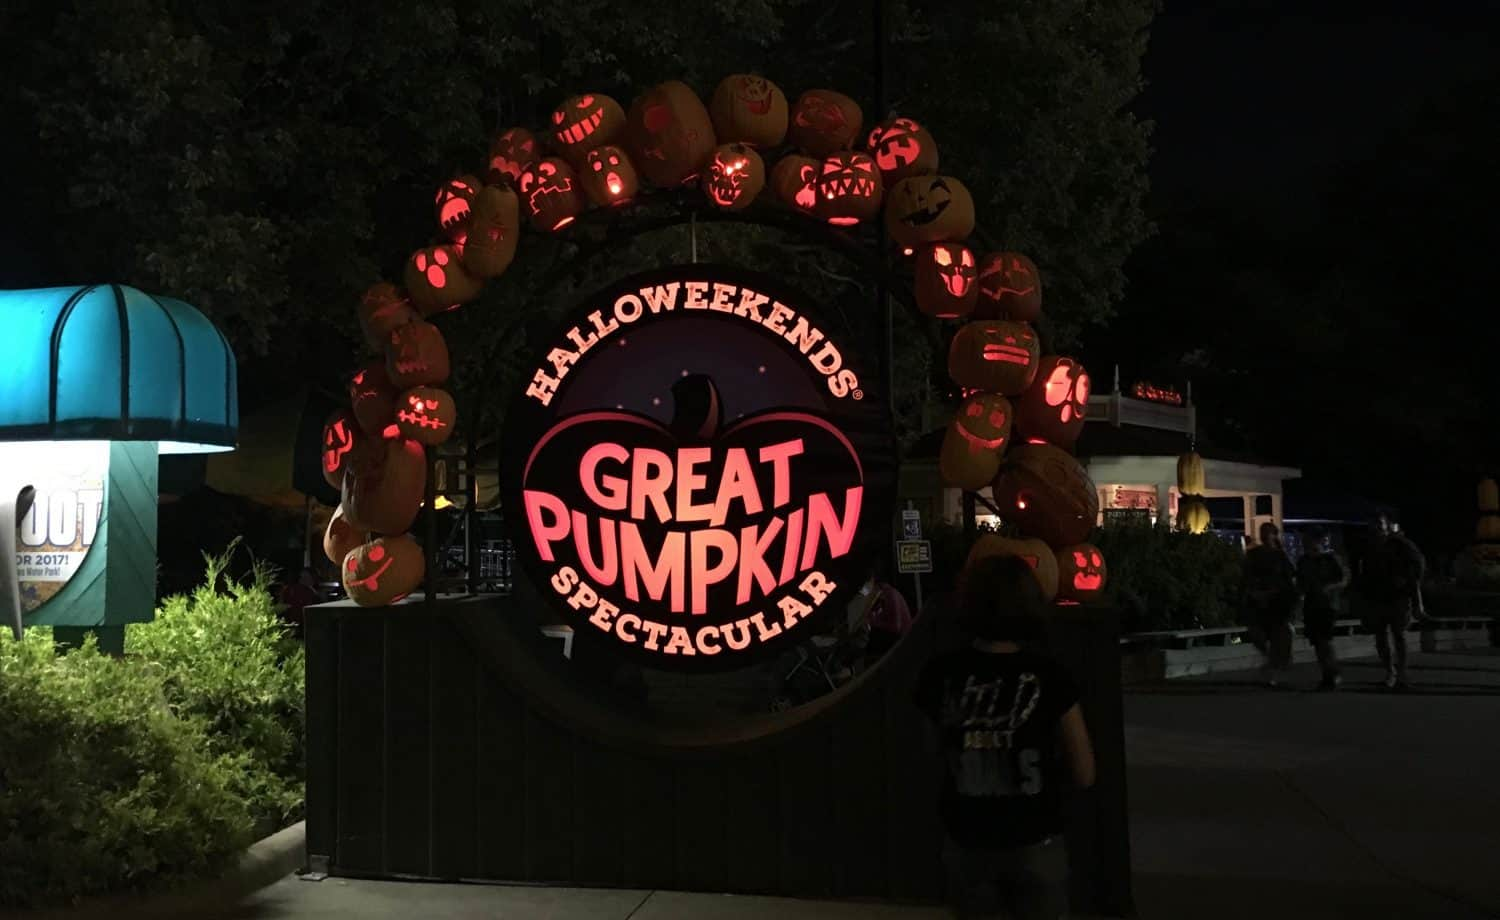 halloweekends-cedar-point-great-pumpkin-spectacular